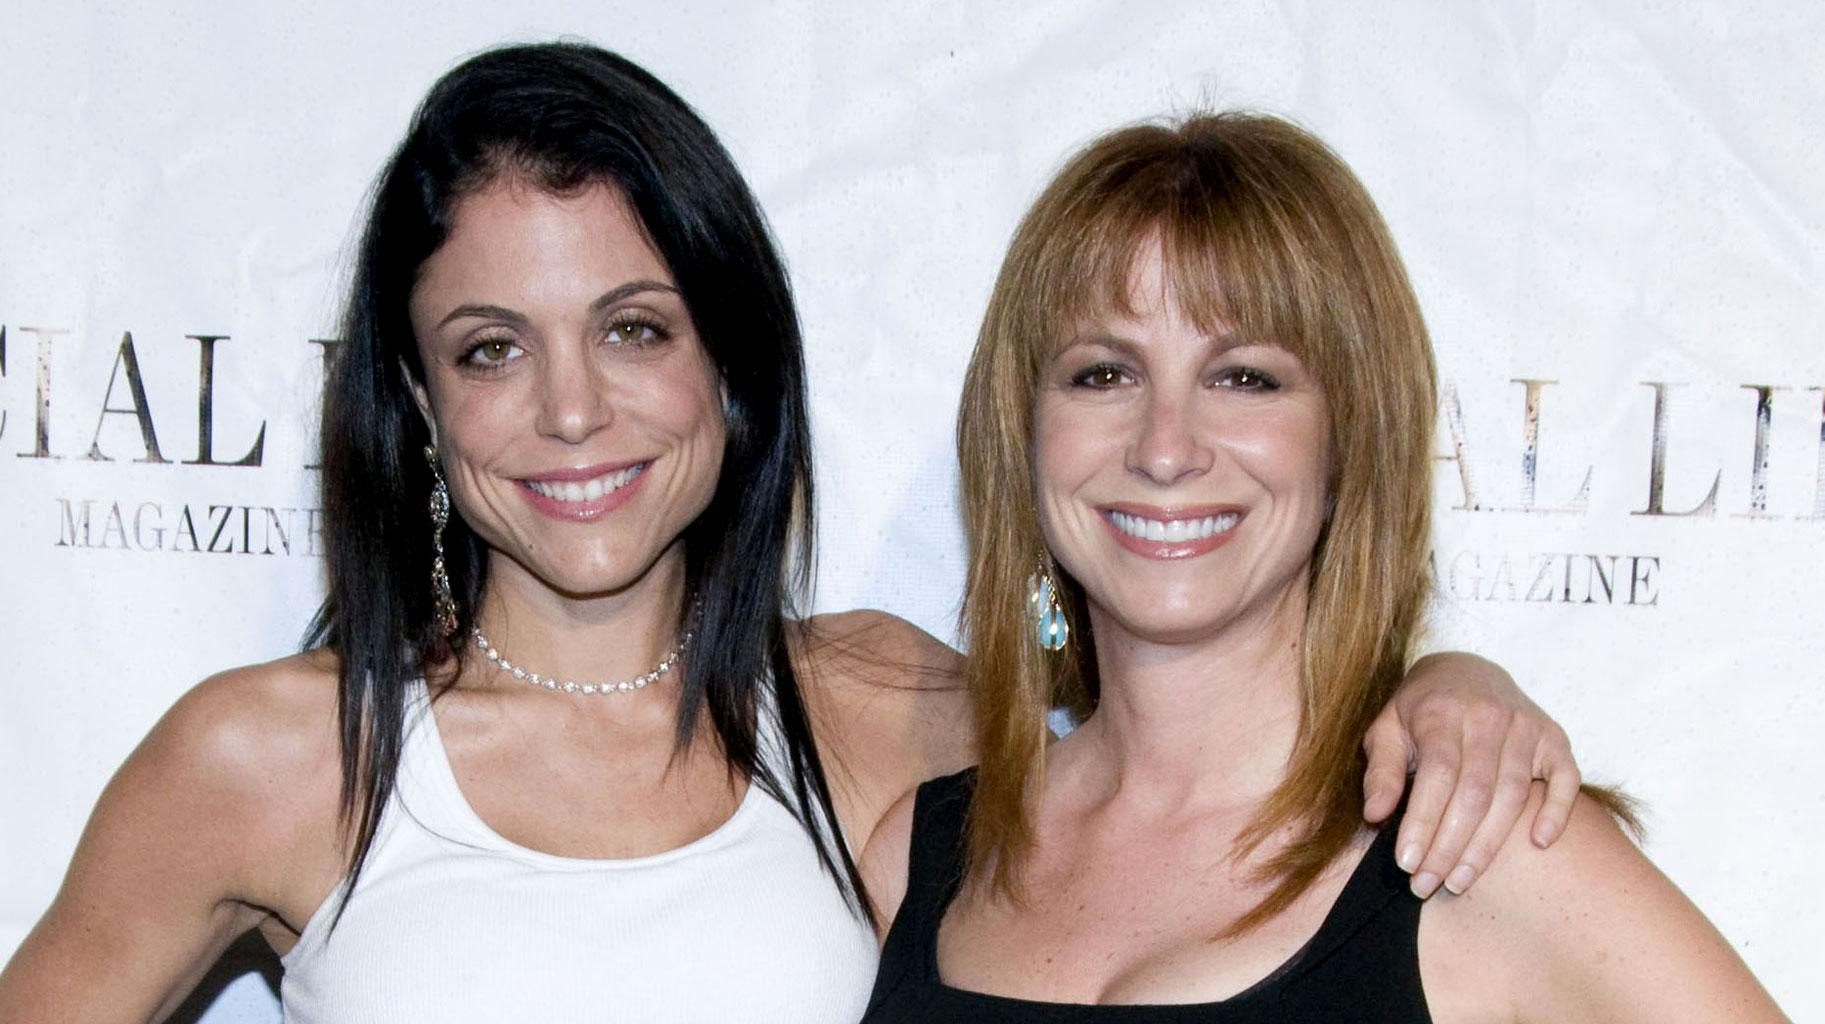 Jill Zarin Disses Ex-BFF Bethenny Frankel - 'She Doesn't Have Time For Me'